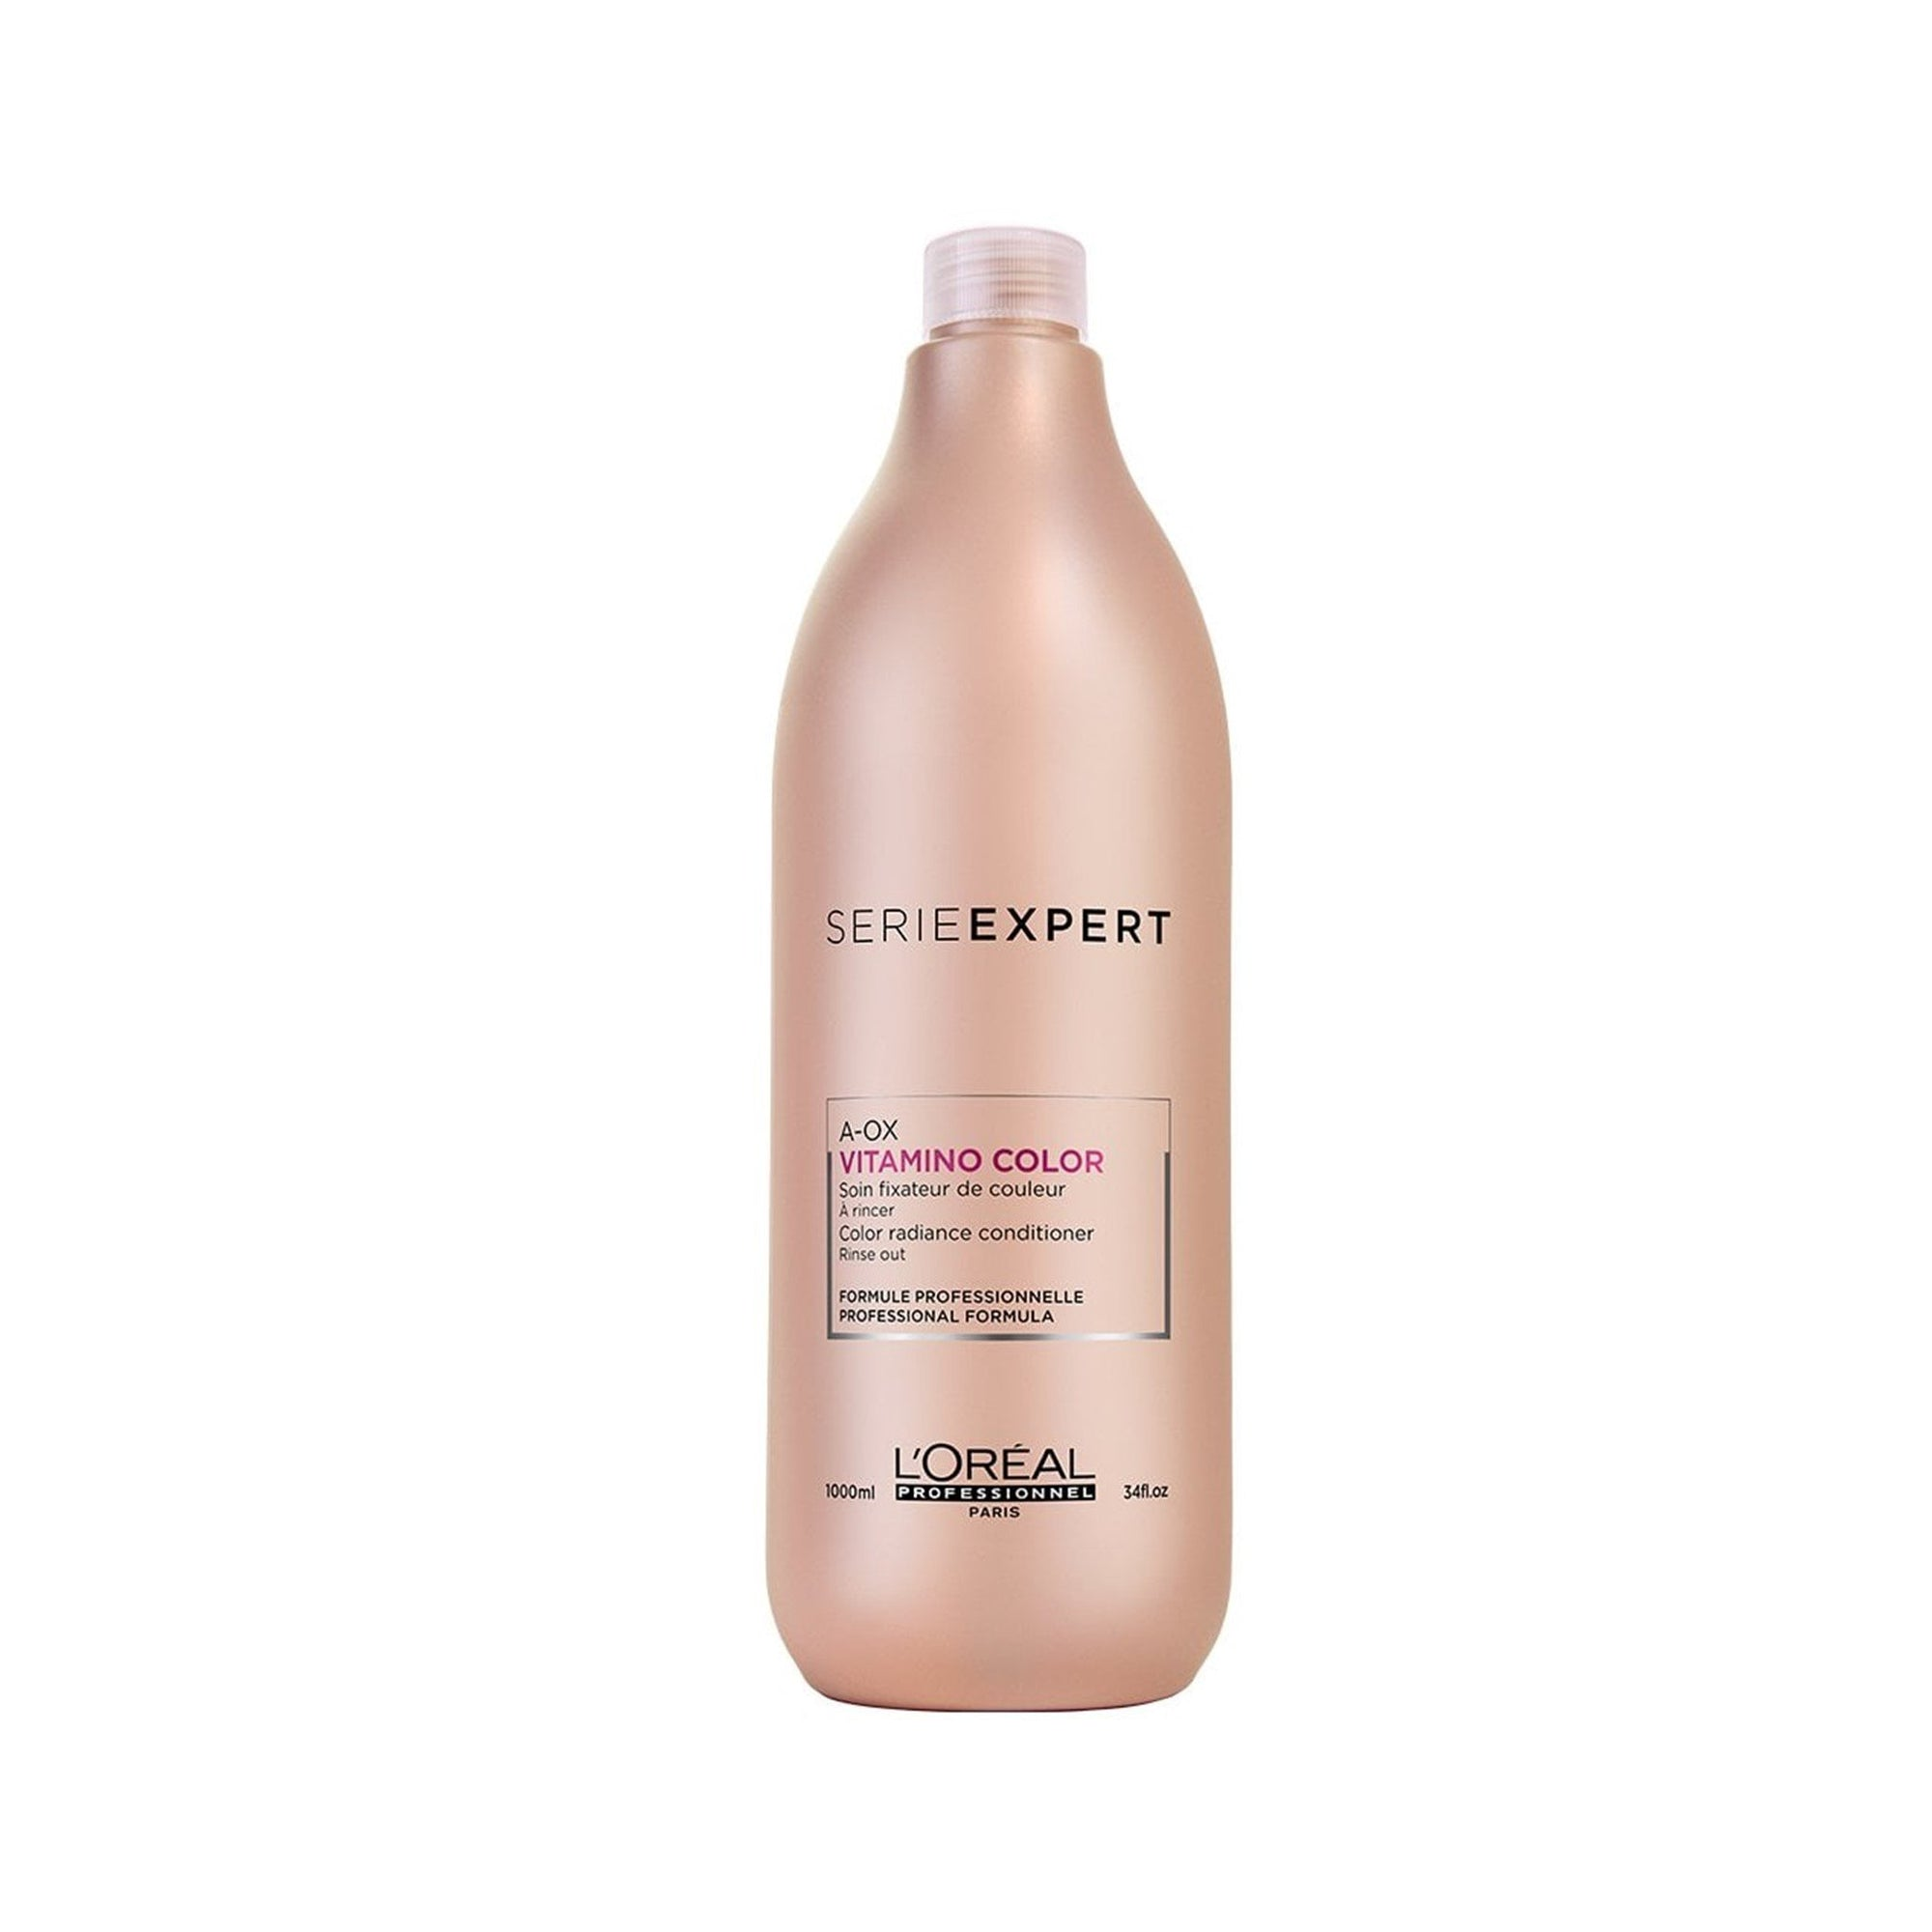 L'Oreal Professionnel Serie Expert - Vitamino Color Conditioner 1 Litre